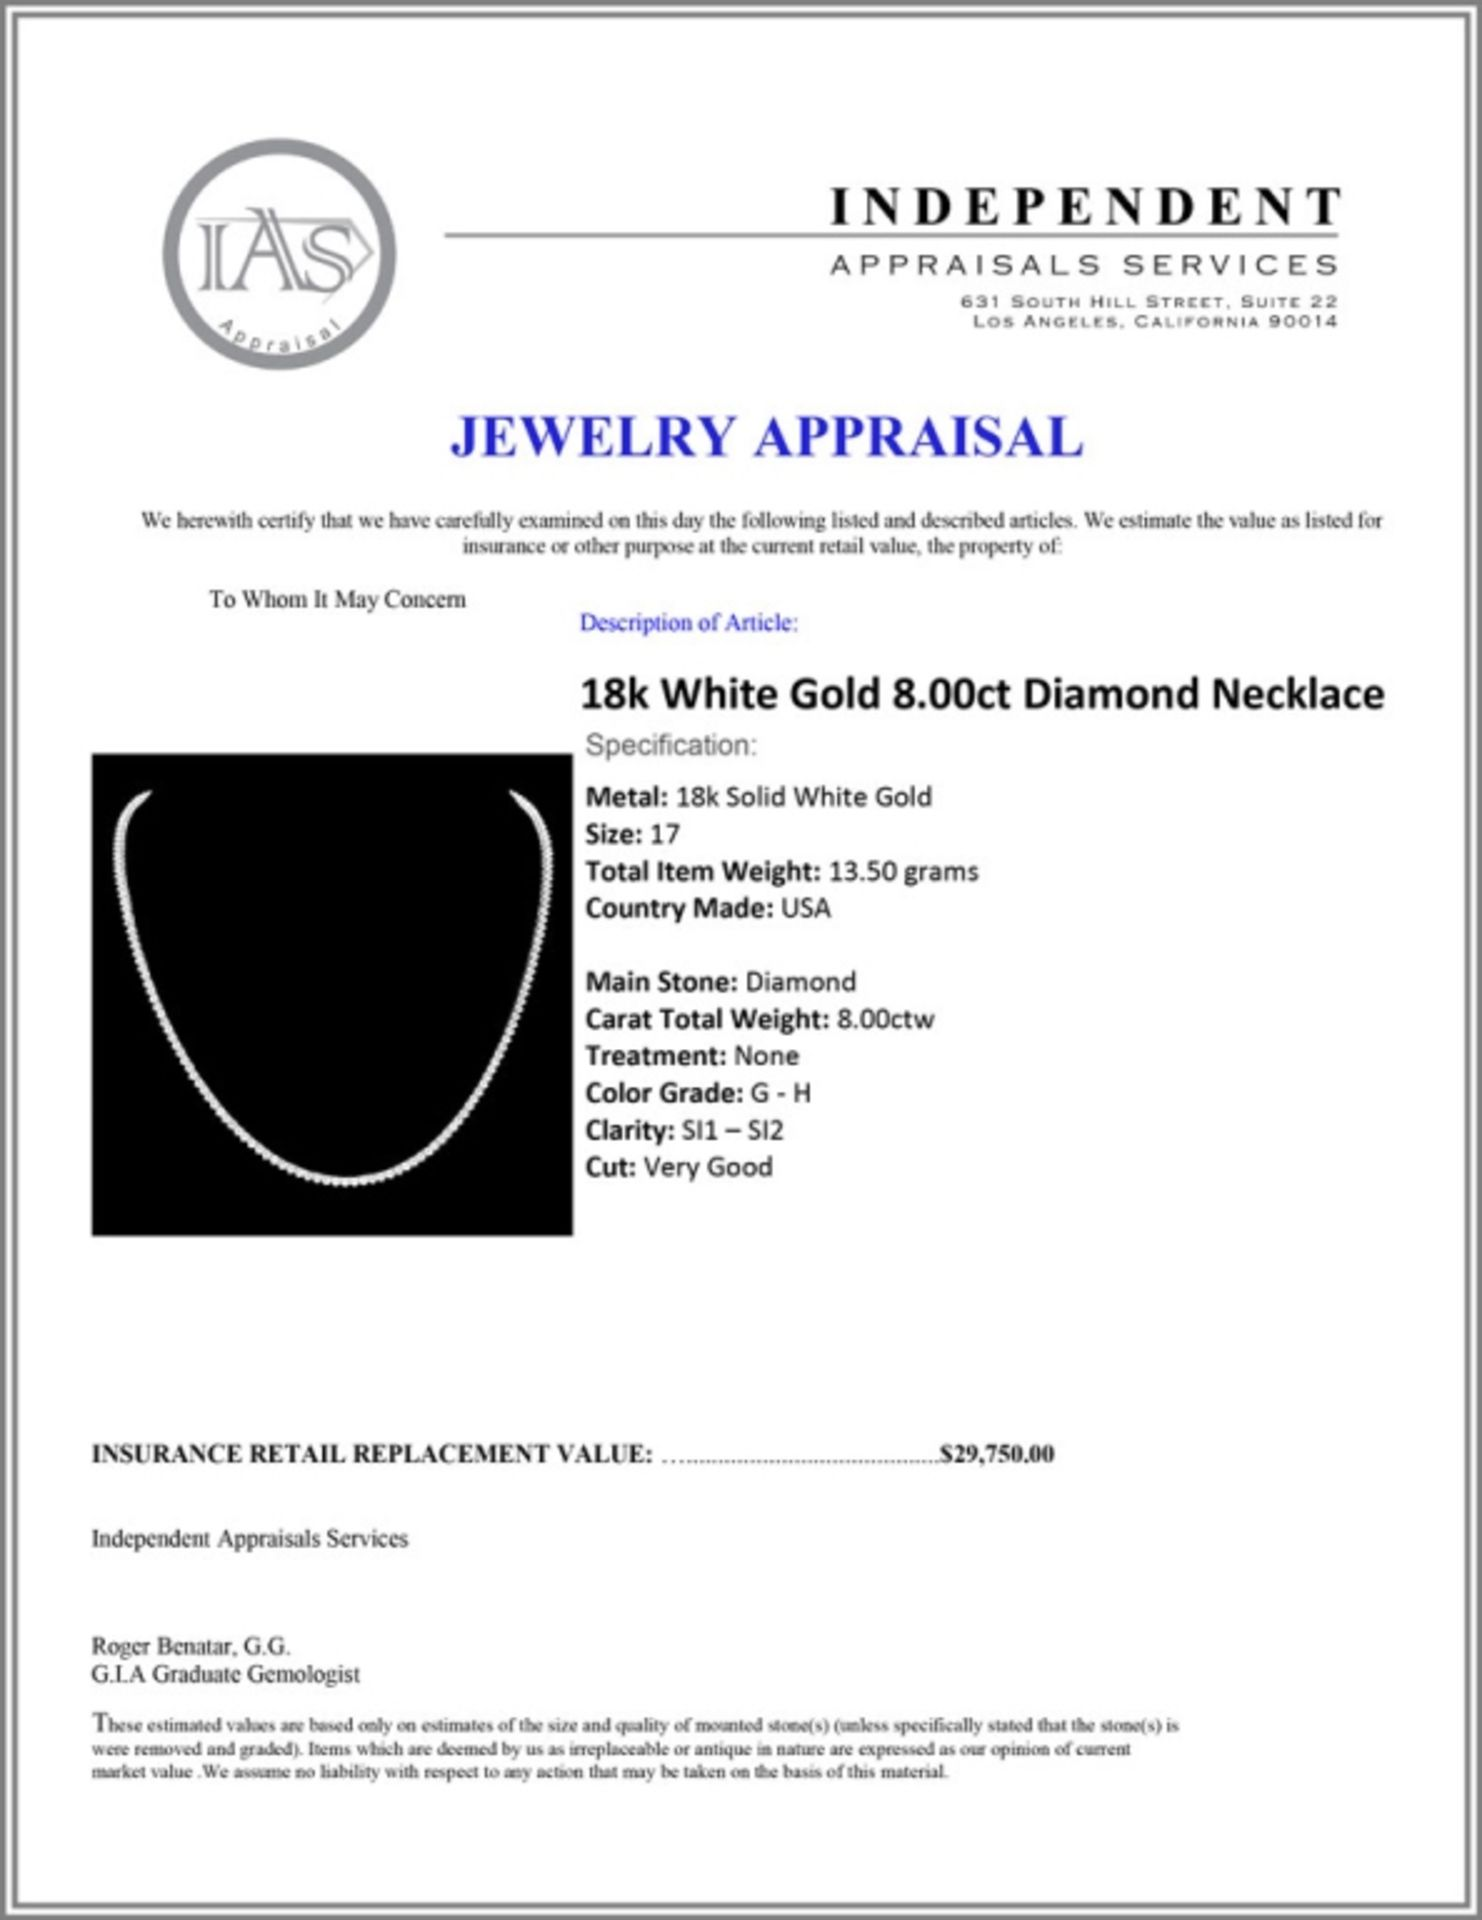 18k White Gold 8.00ct Diamond Necklace - Image 4 of 4